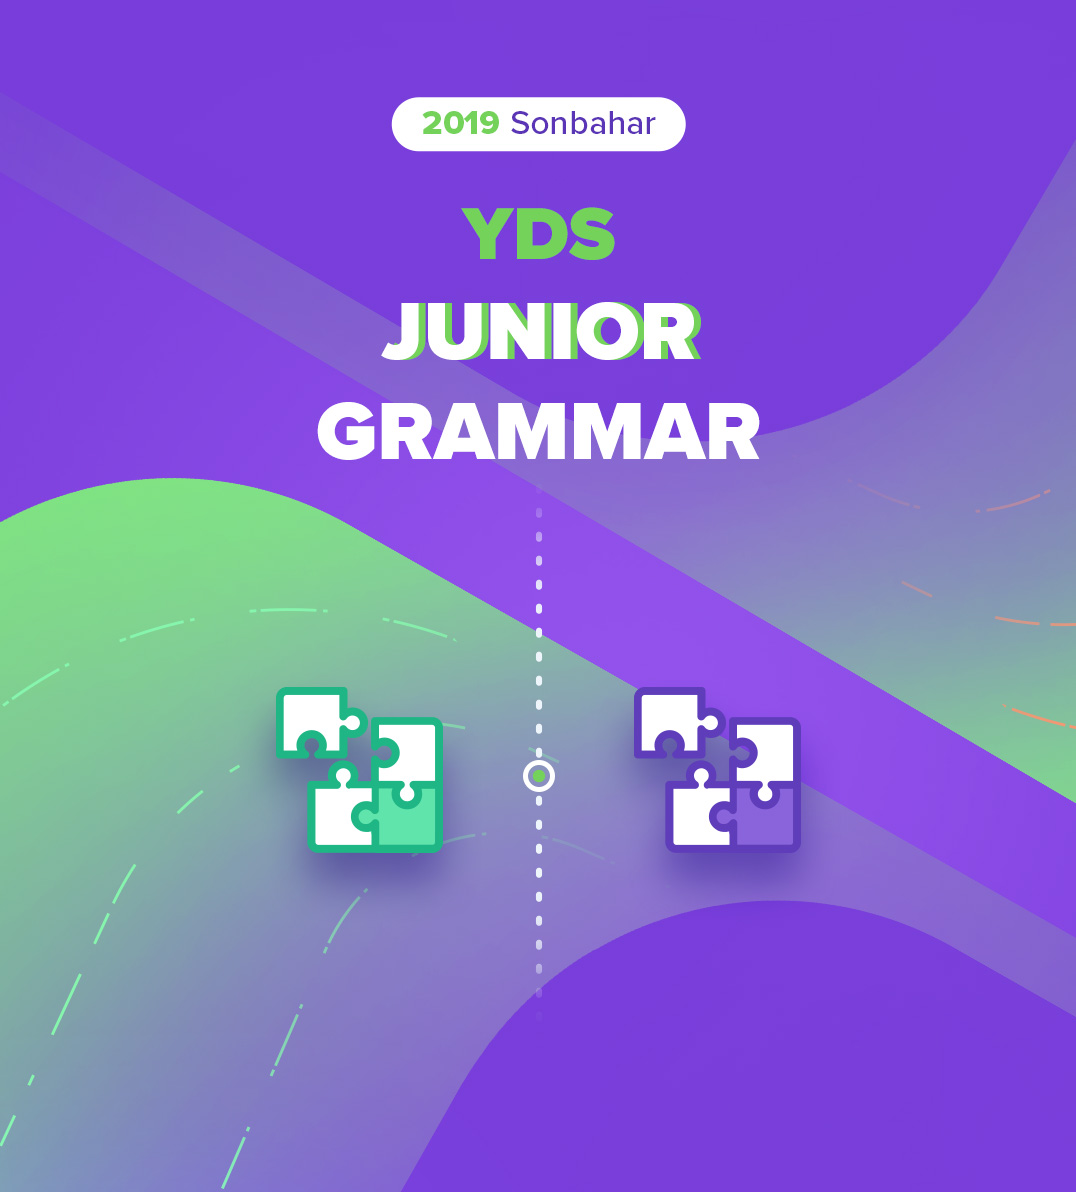 YDS Junior Grammar